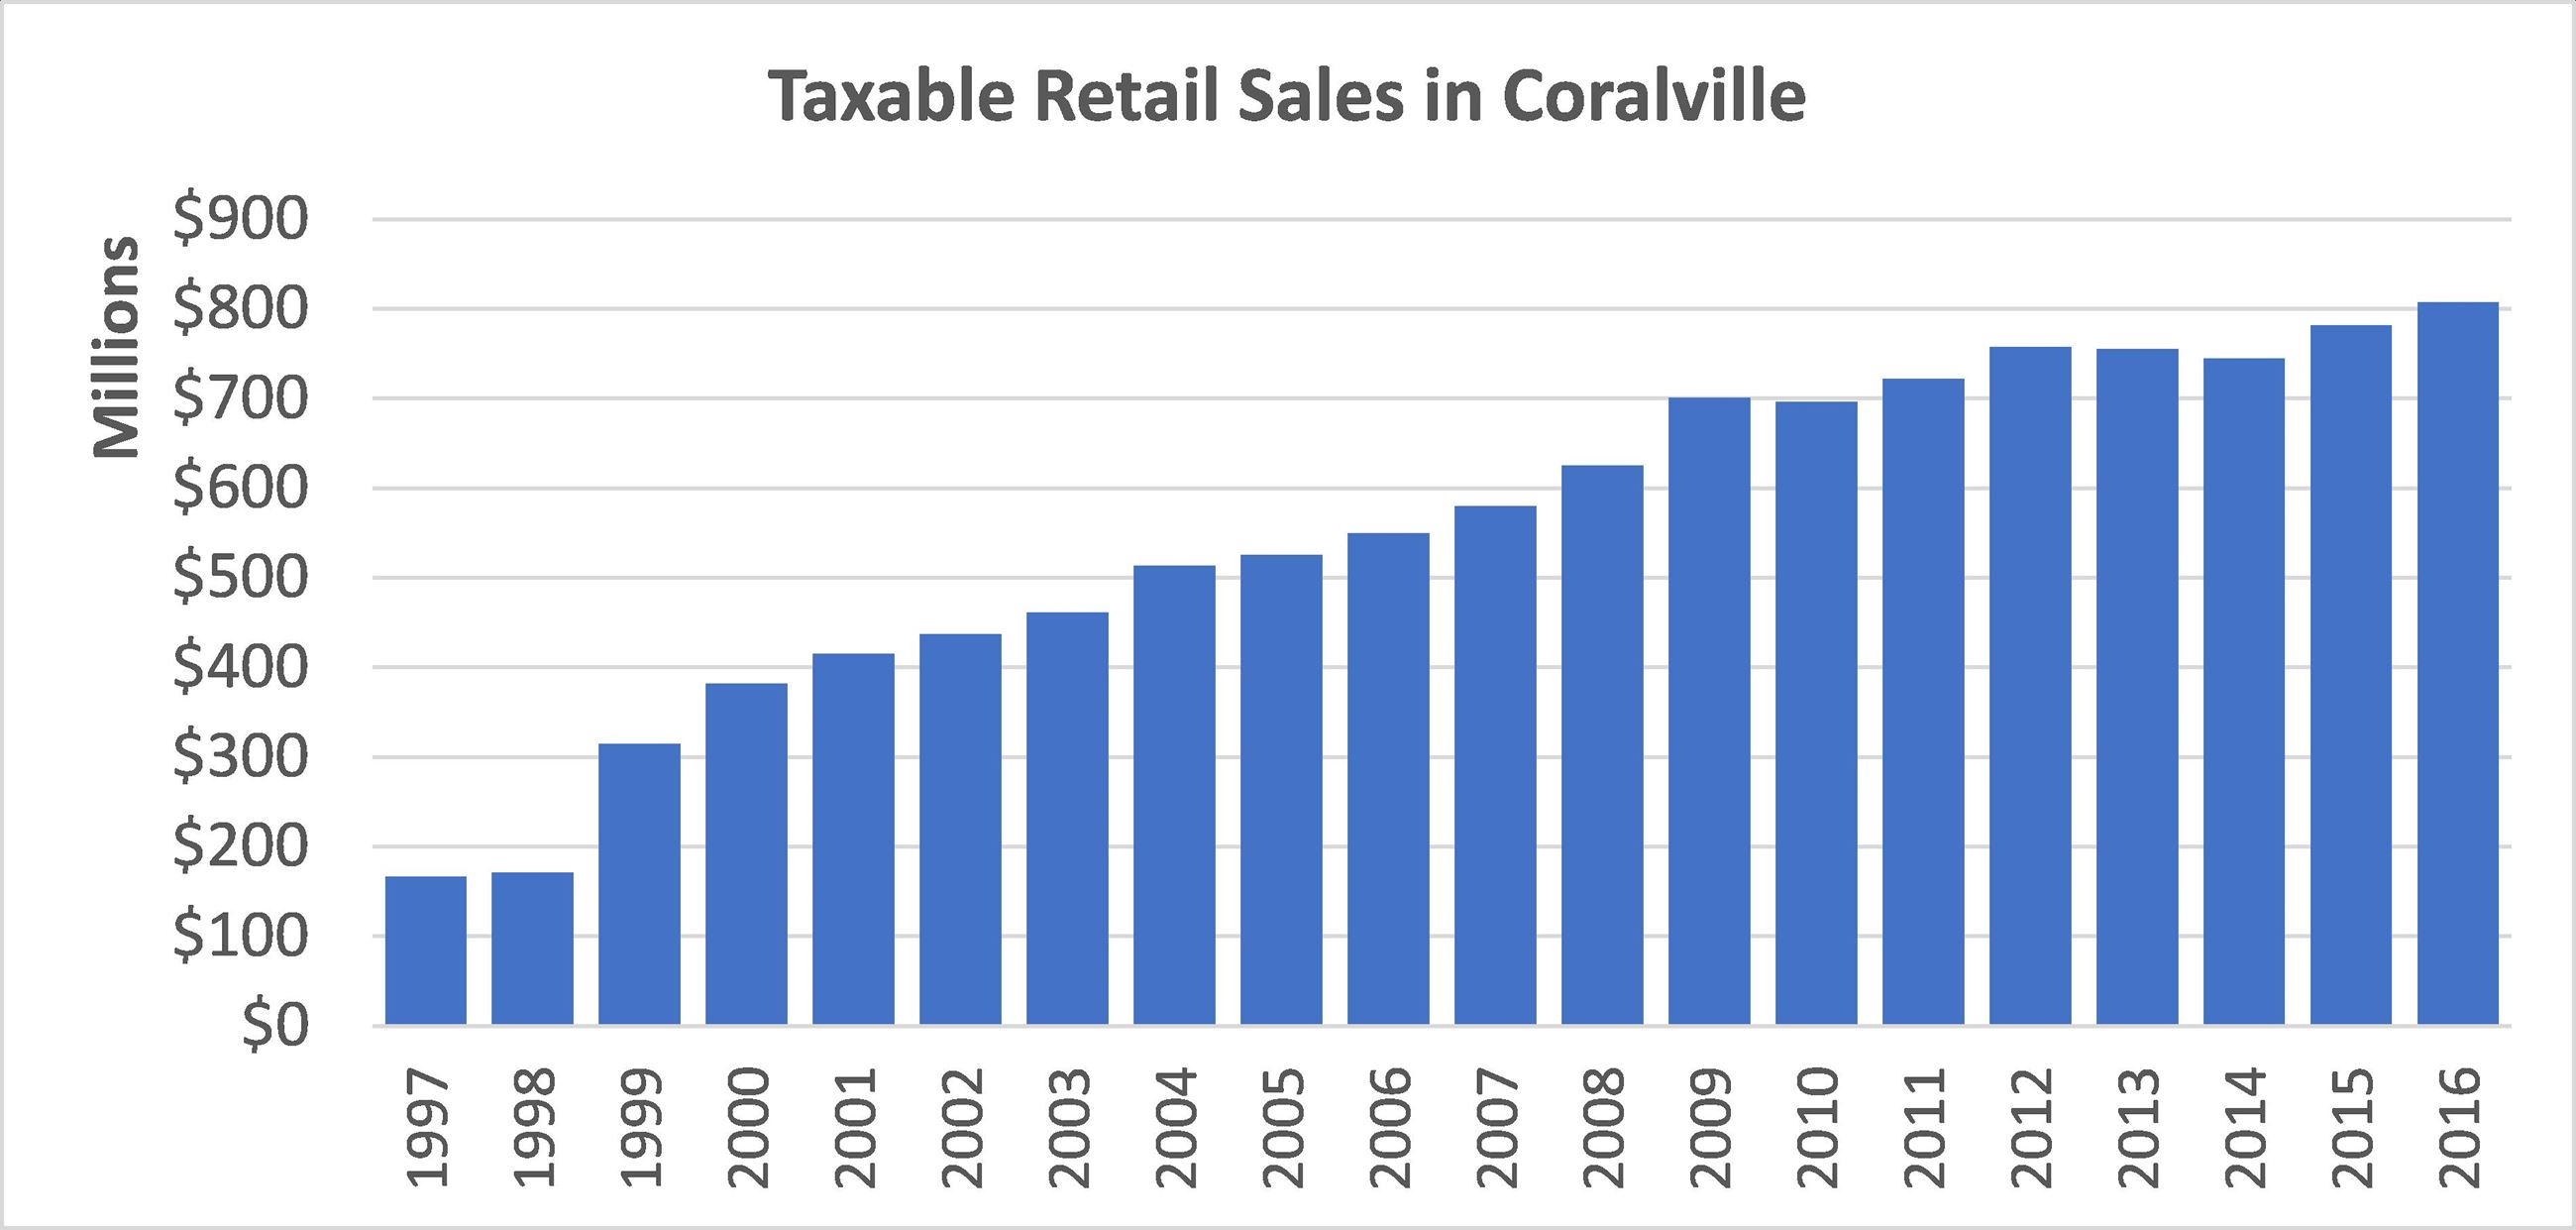 Taxable Retail Sales in Coralville_1997 to 2016